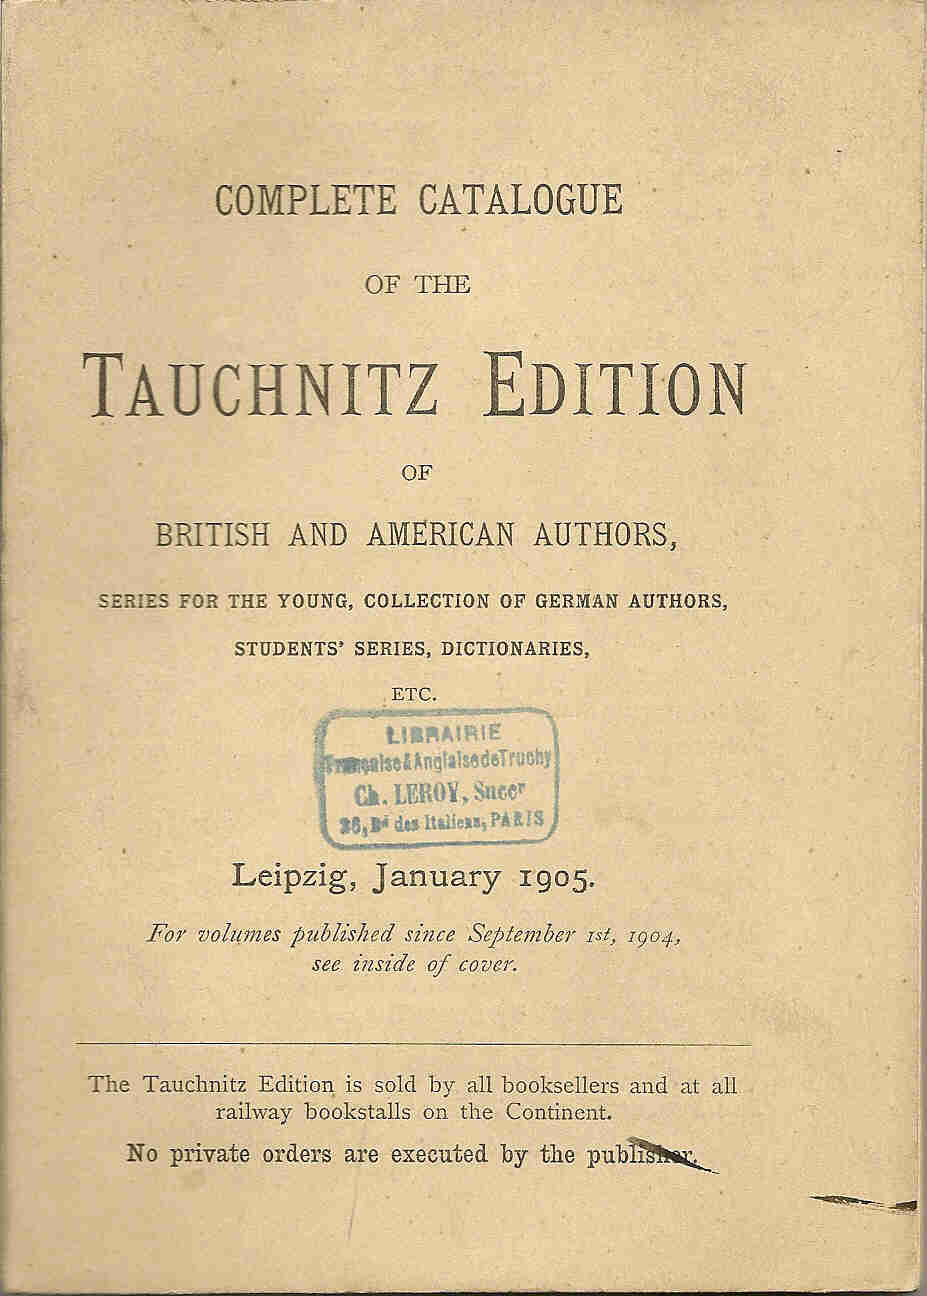 Complete catalogue January 1905